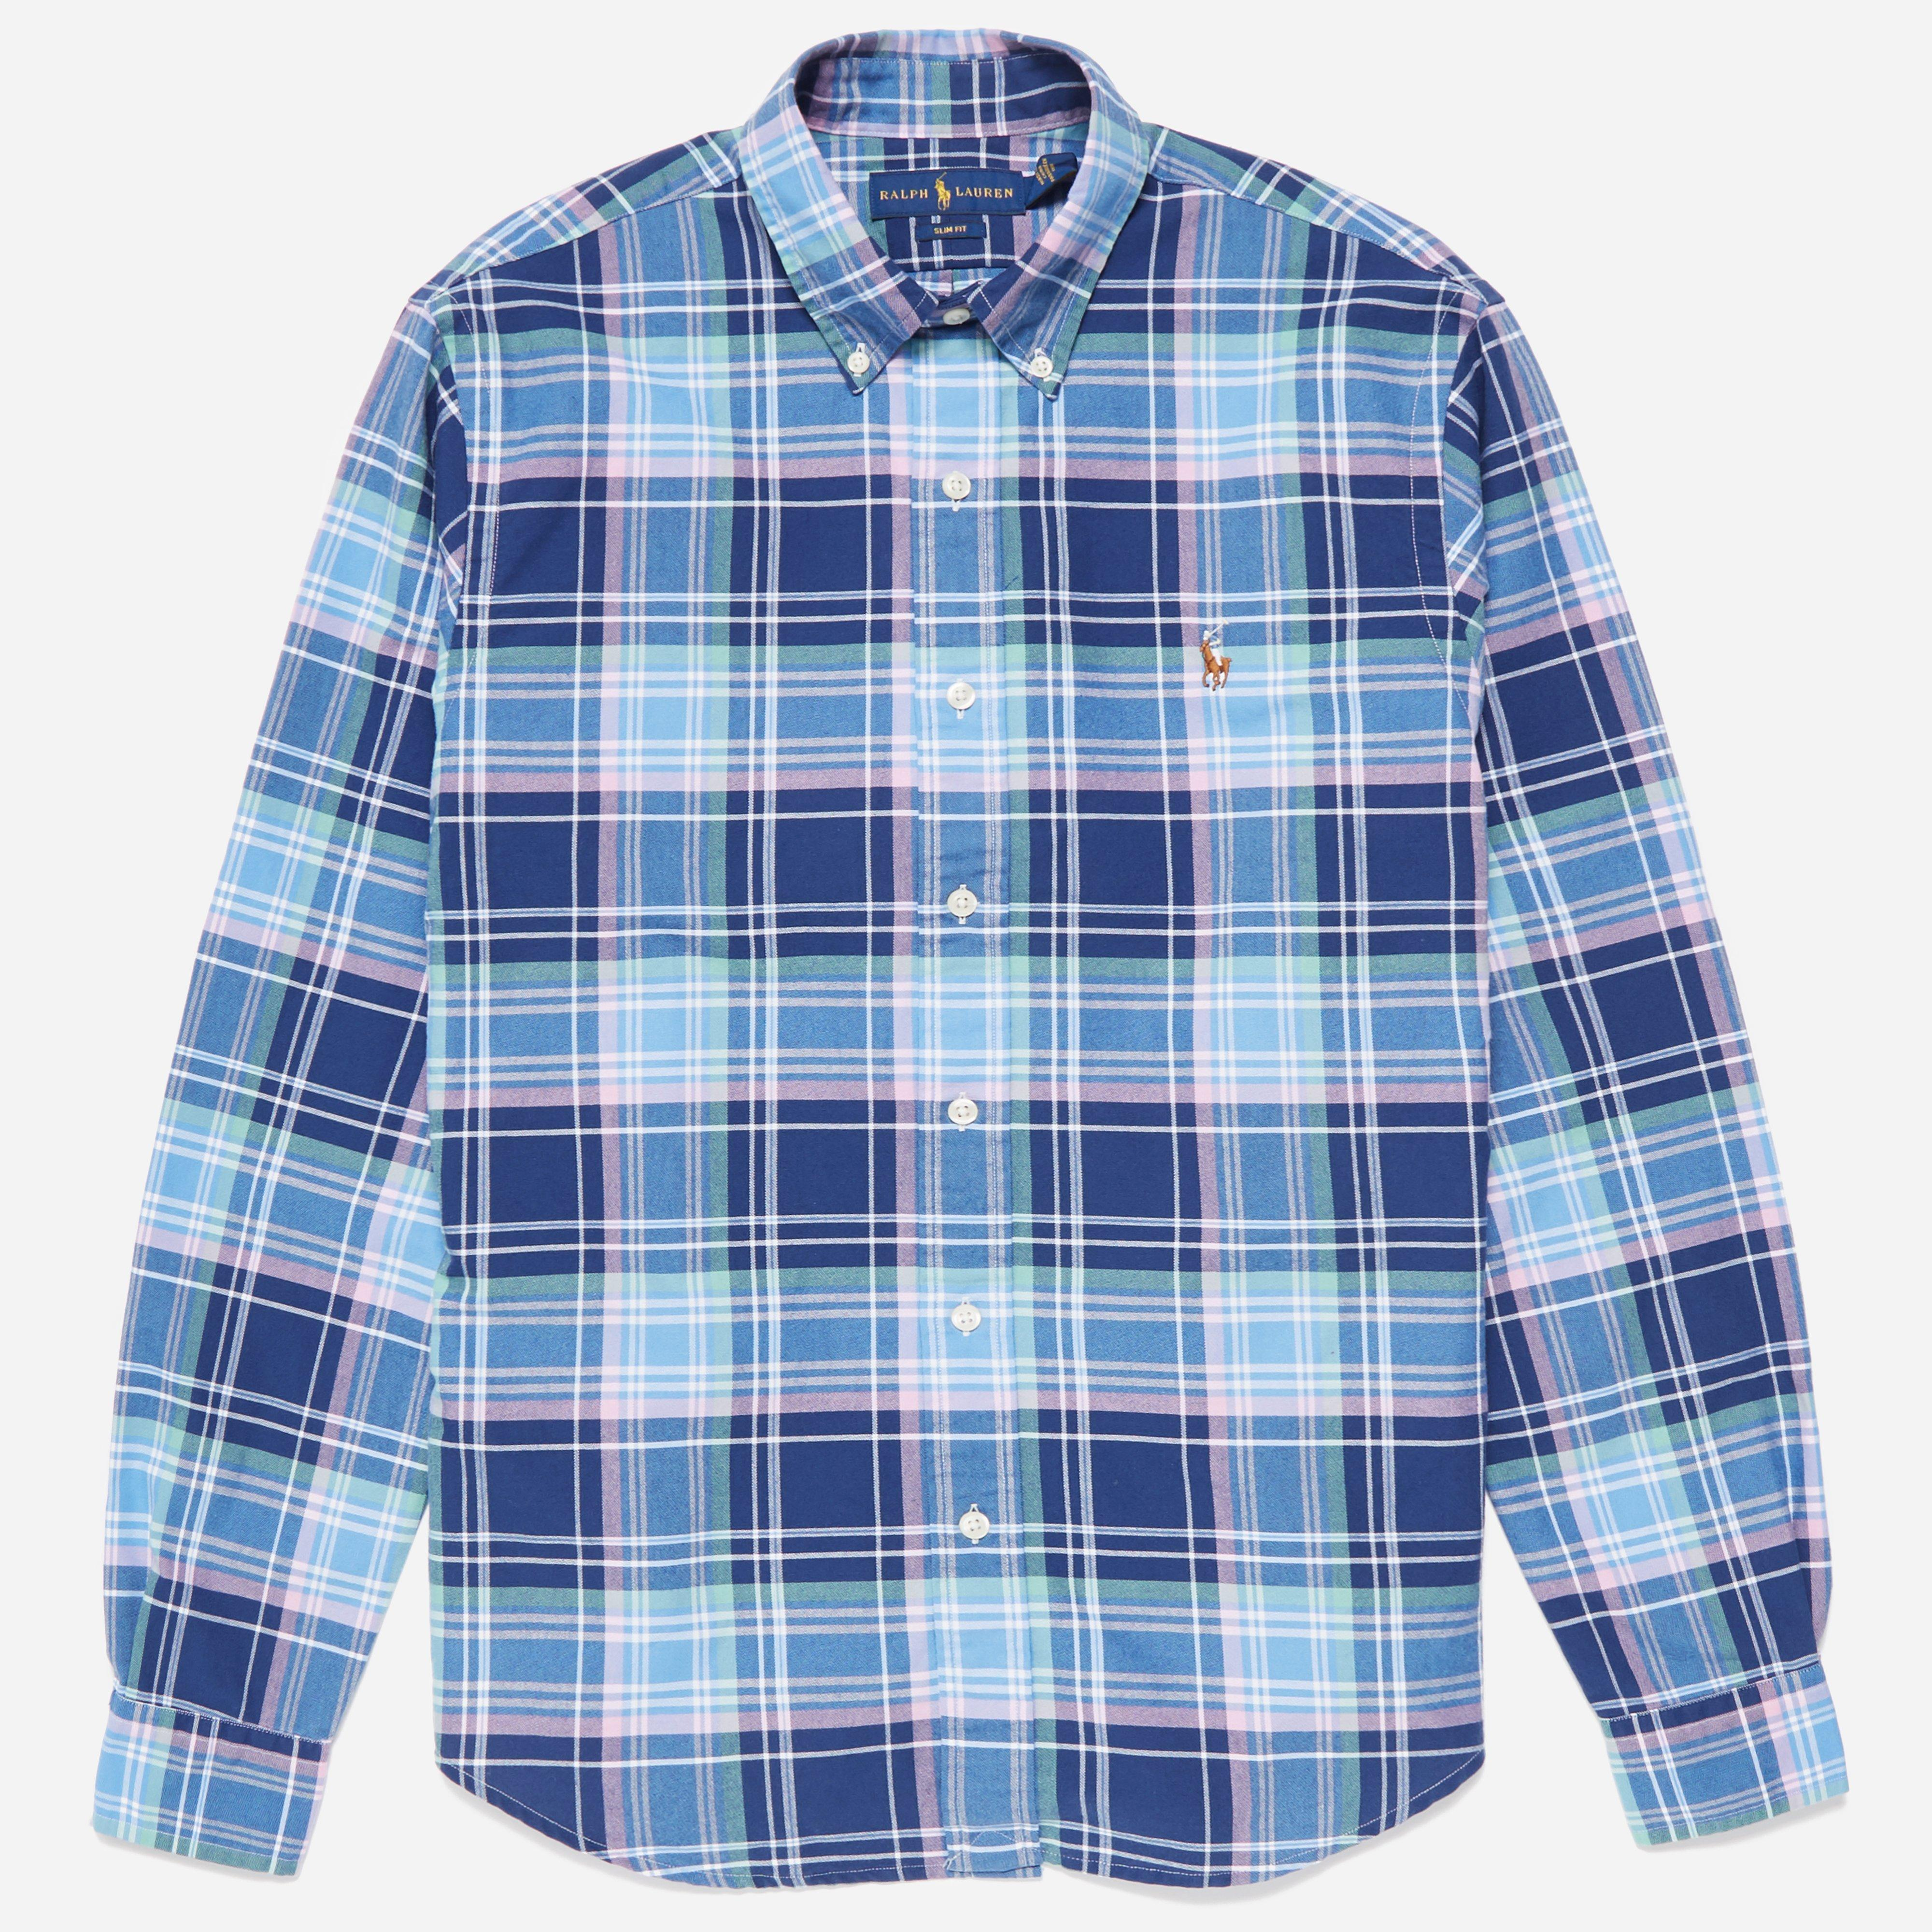 Lyst polo ralph lauren slim fit oxford check shirt in for Slim fit check shirt